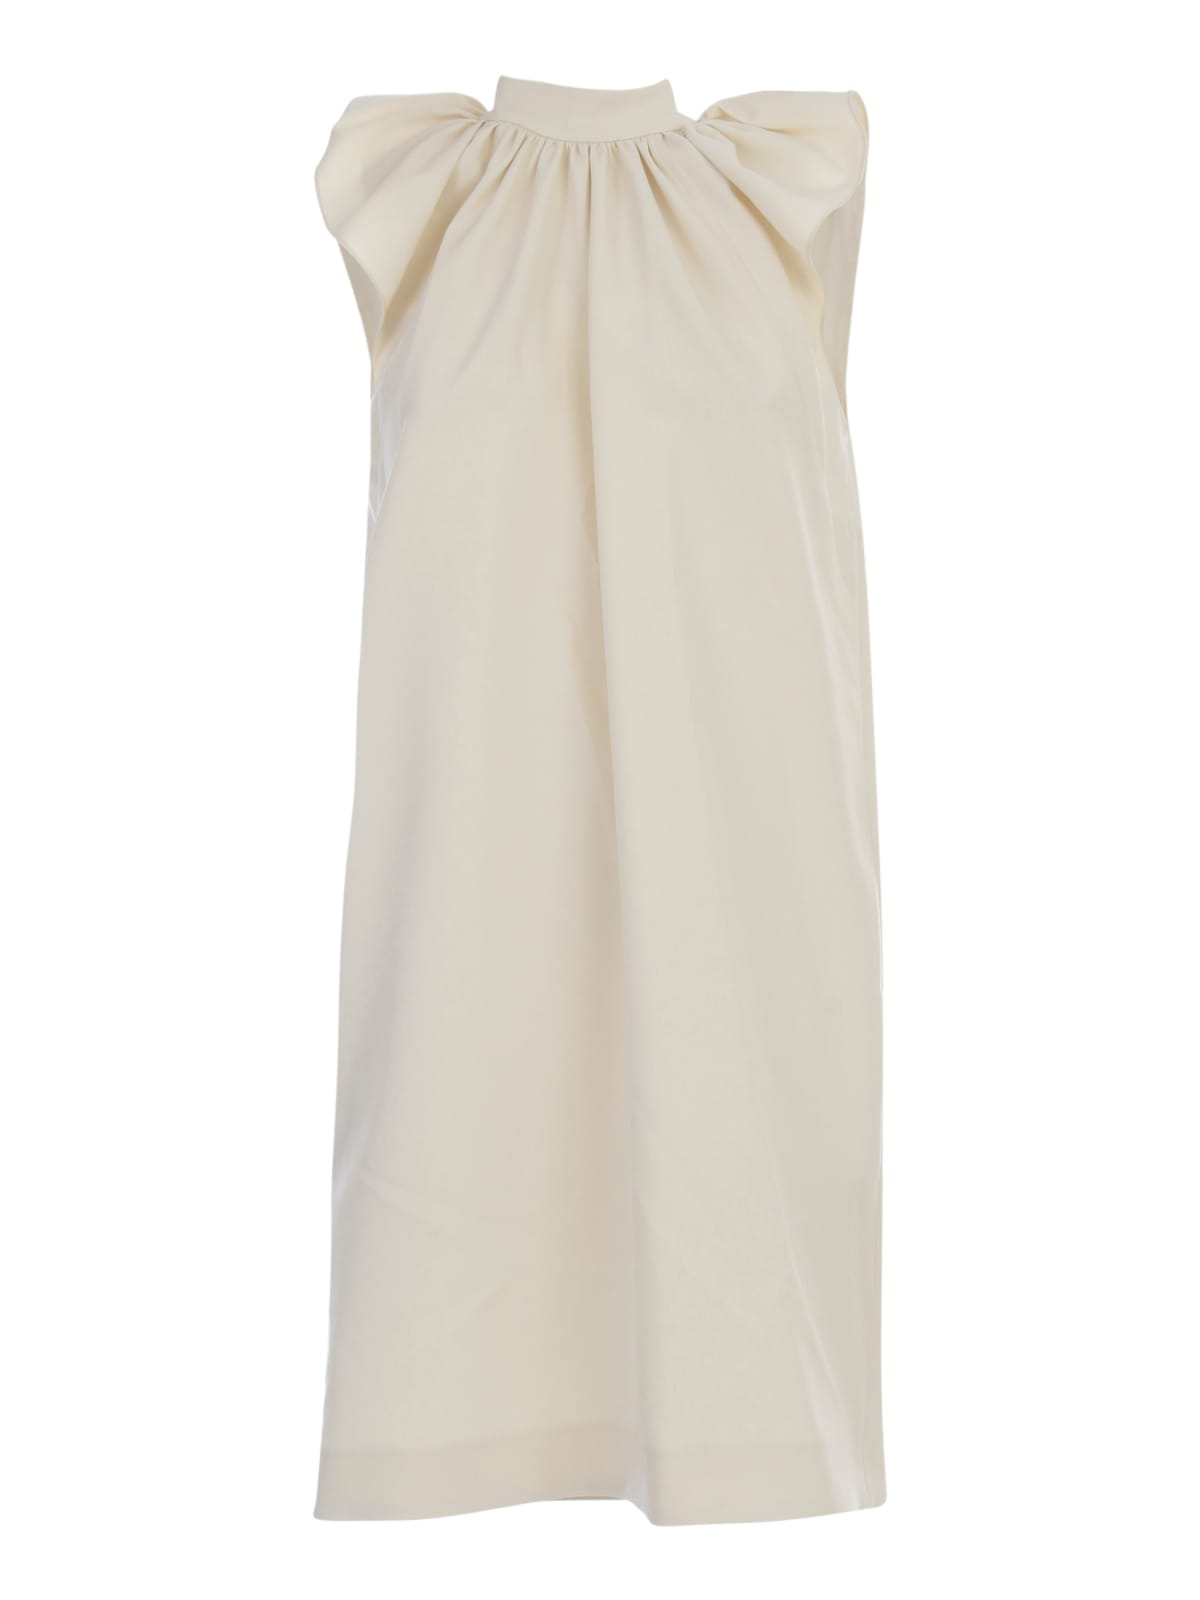 Buy Victoria Beckham Rouched Shoulder Sleevless Dress online, shop Victoria Beckham with free shipping